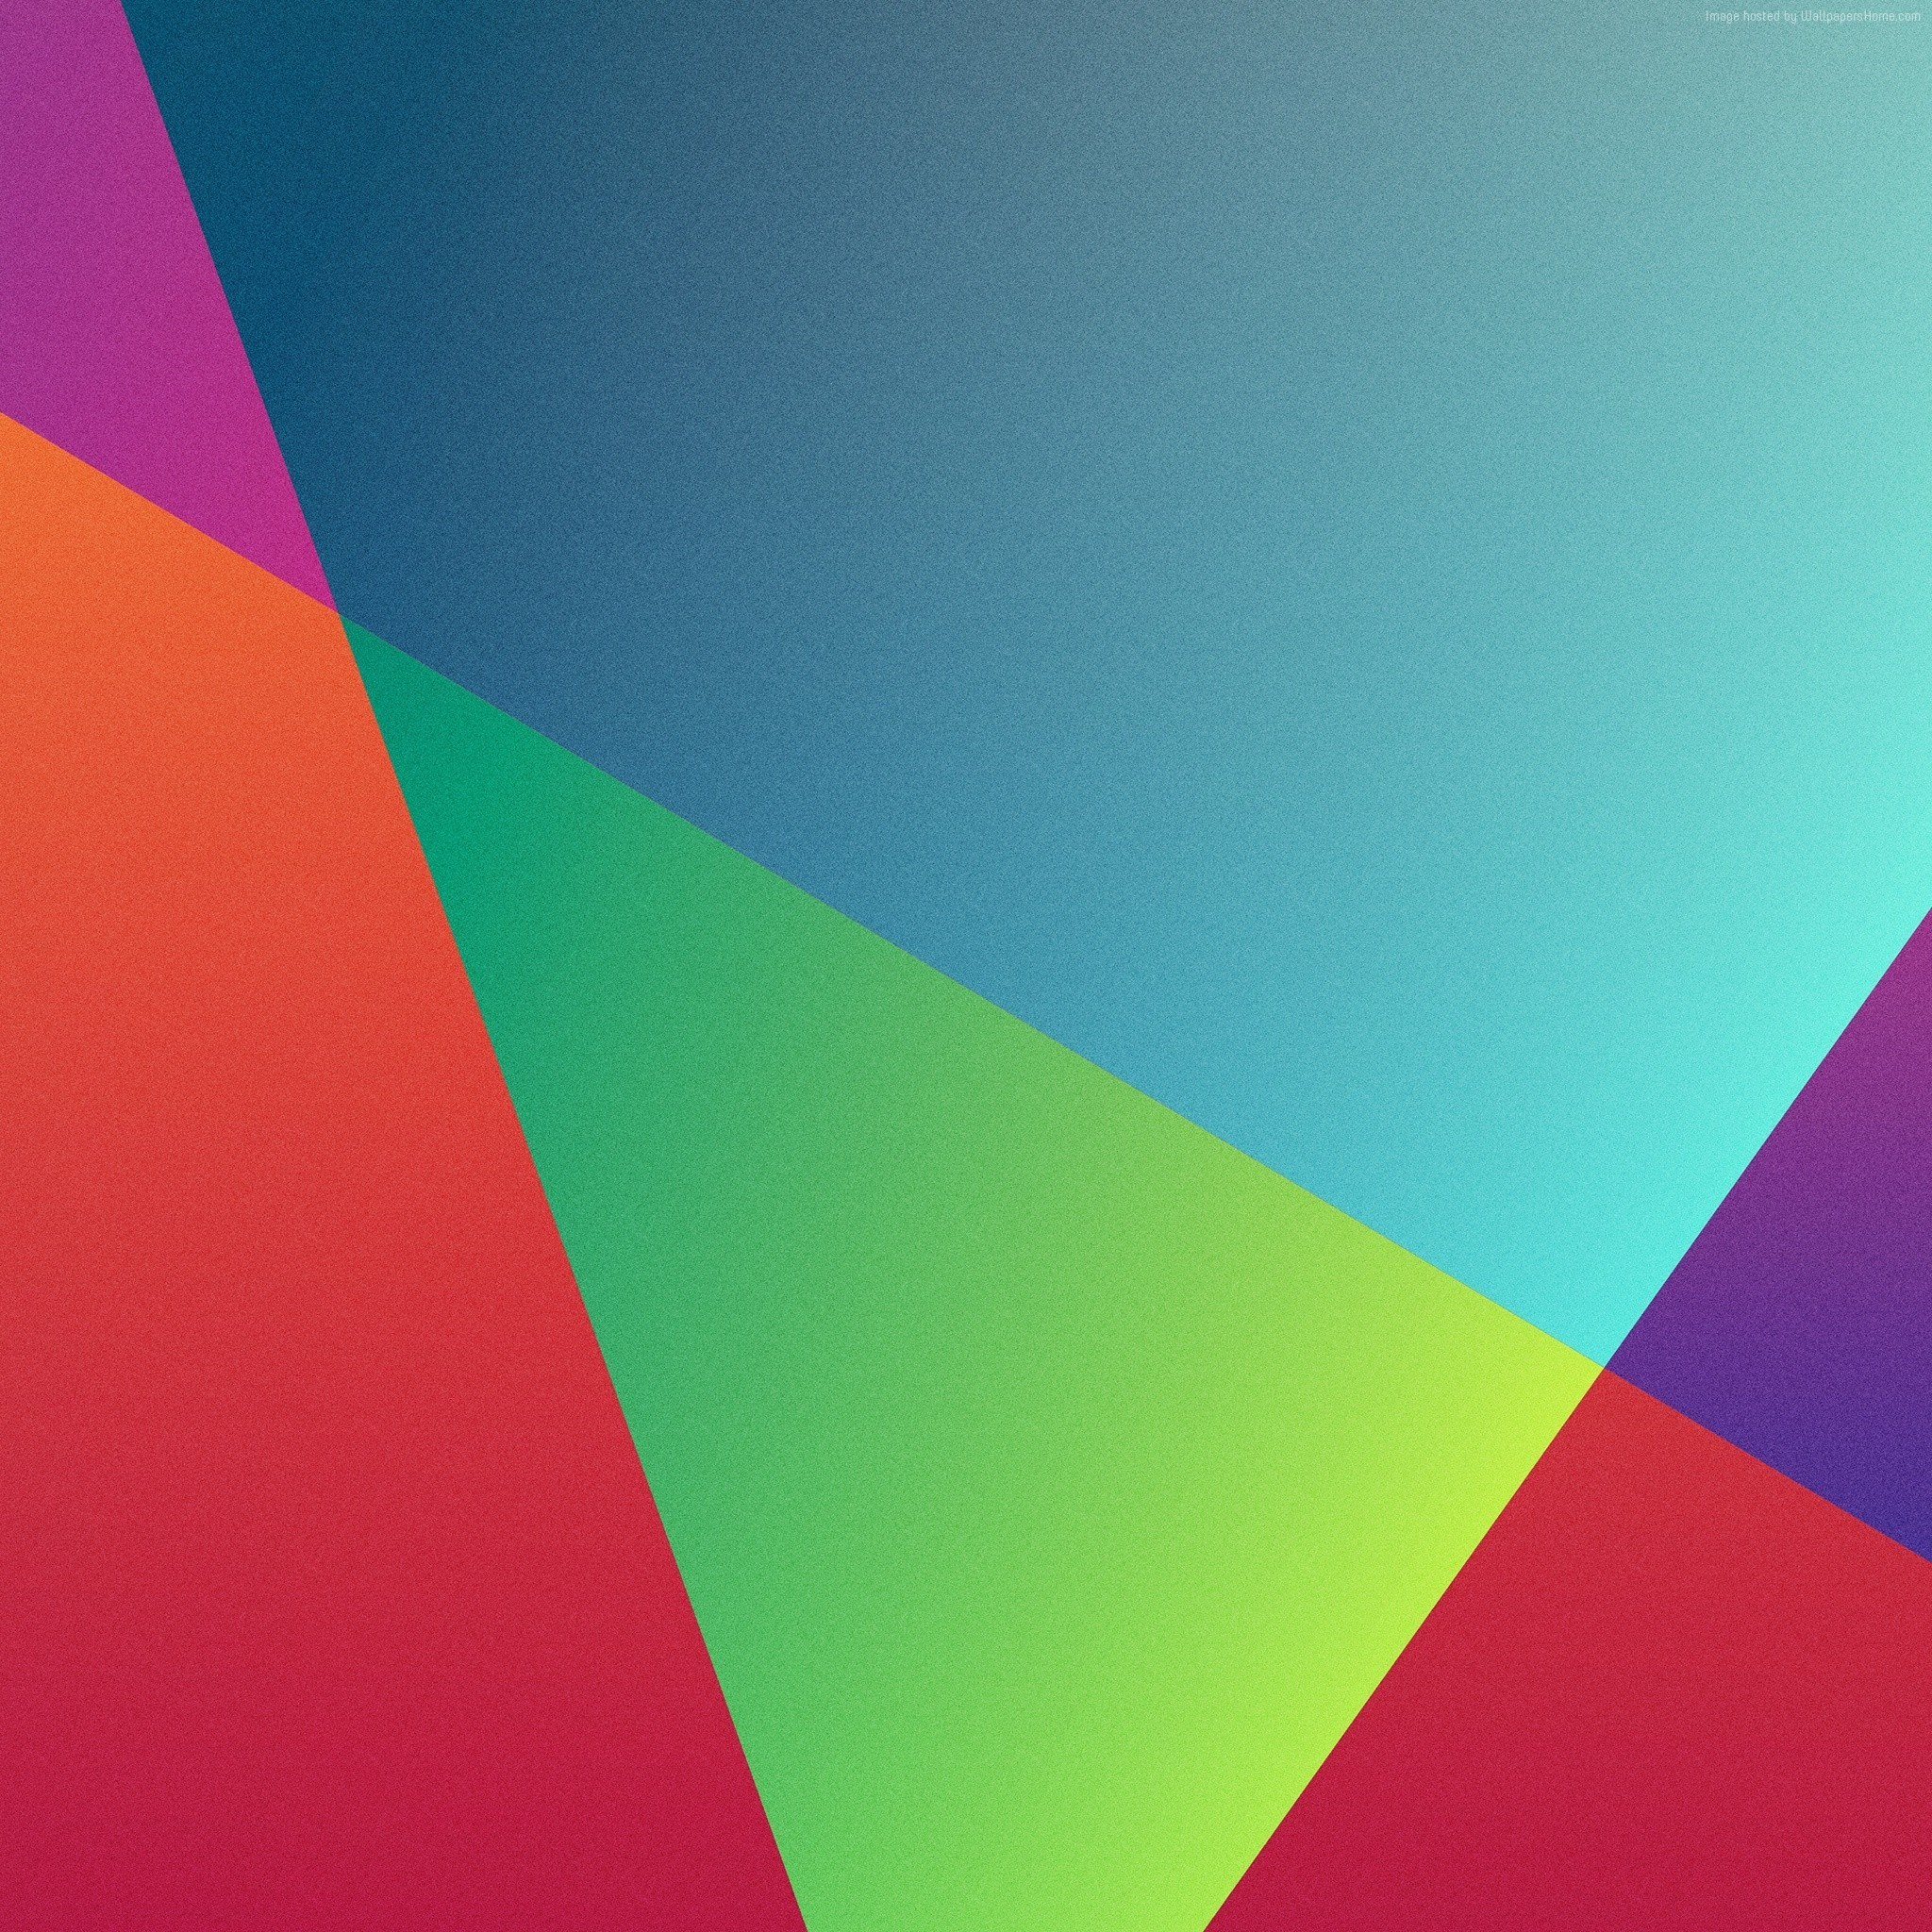 Wallpaper polygon, 4k, HD wallpaper, android wallpaper, triangle,  background, orange, red, blue, pattern, OS #3519 4k Wallpapers is an  immediate reaction,